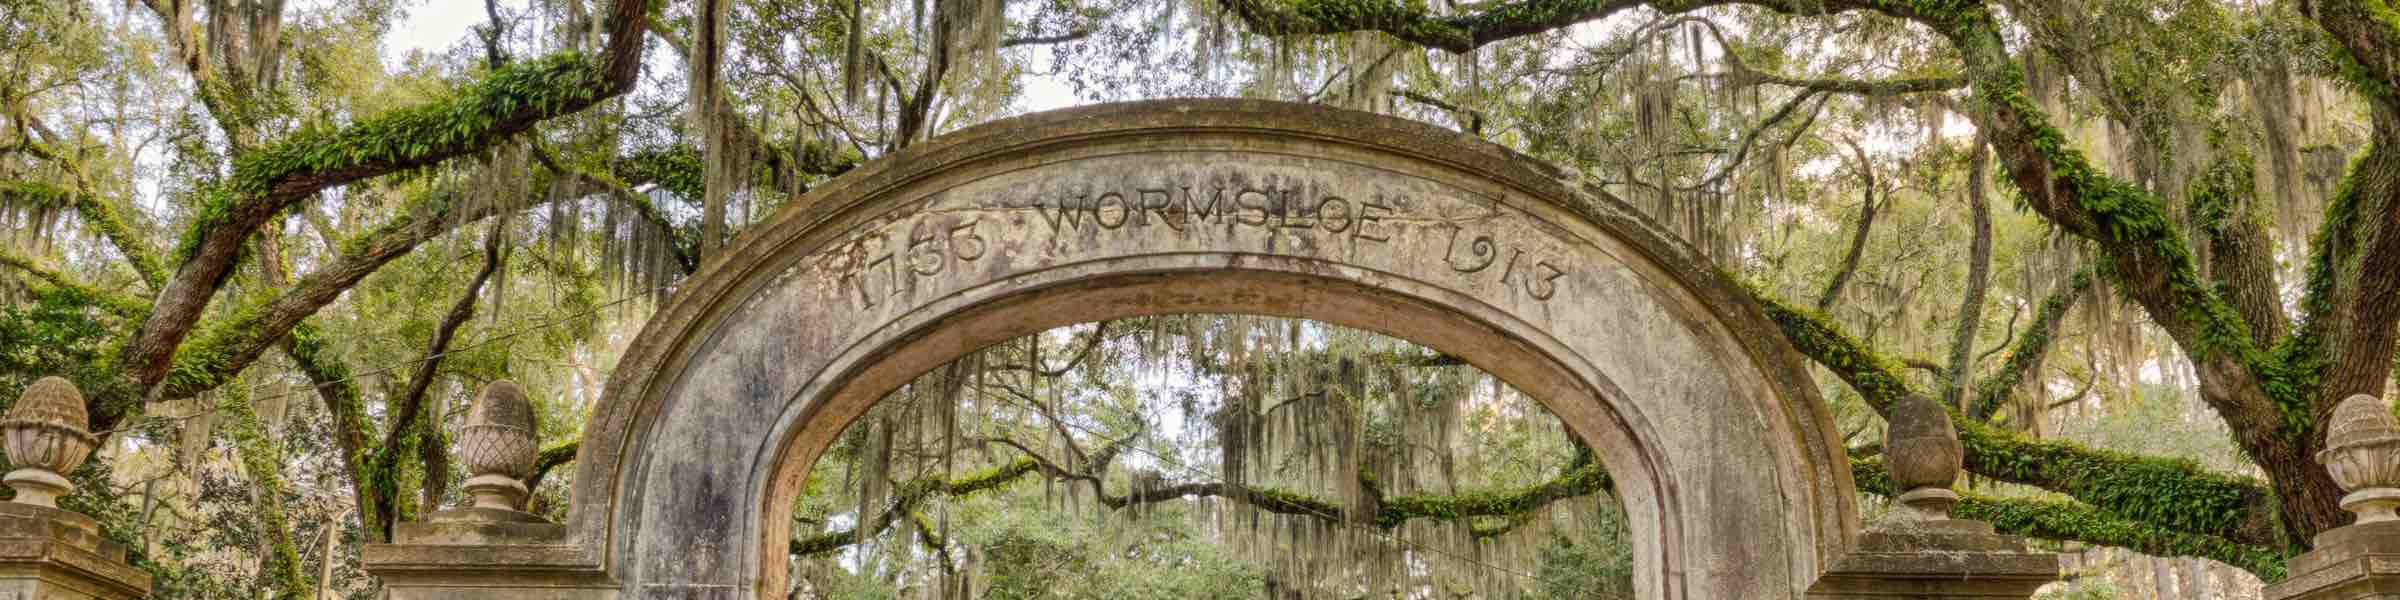 Mossy live oaks behind the gateway arch of Savannah's colonial-era plantation, Wormsloe.